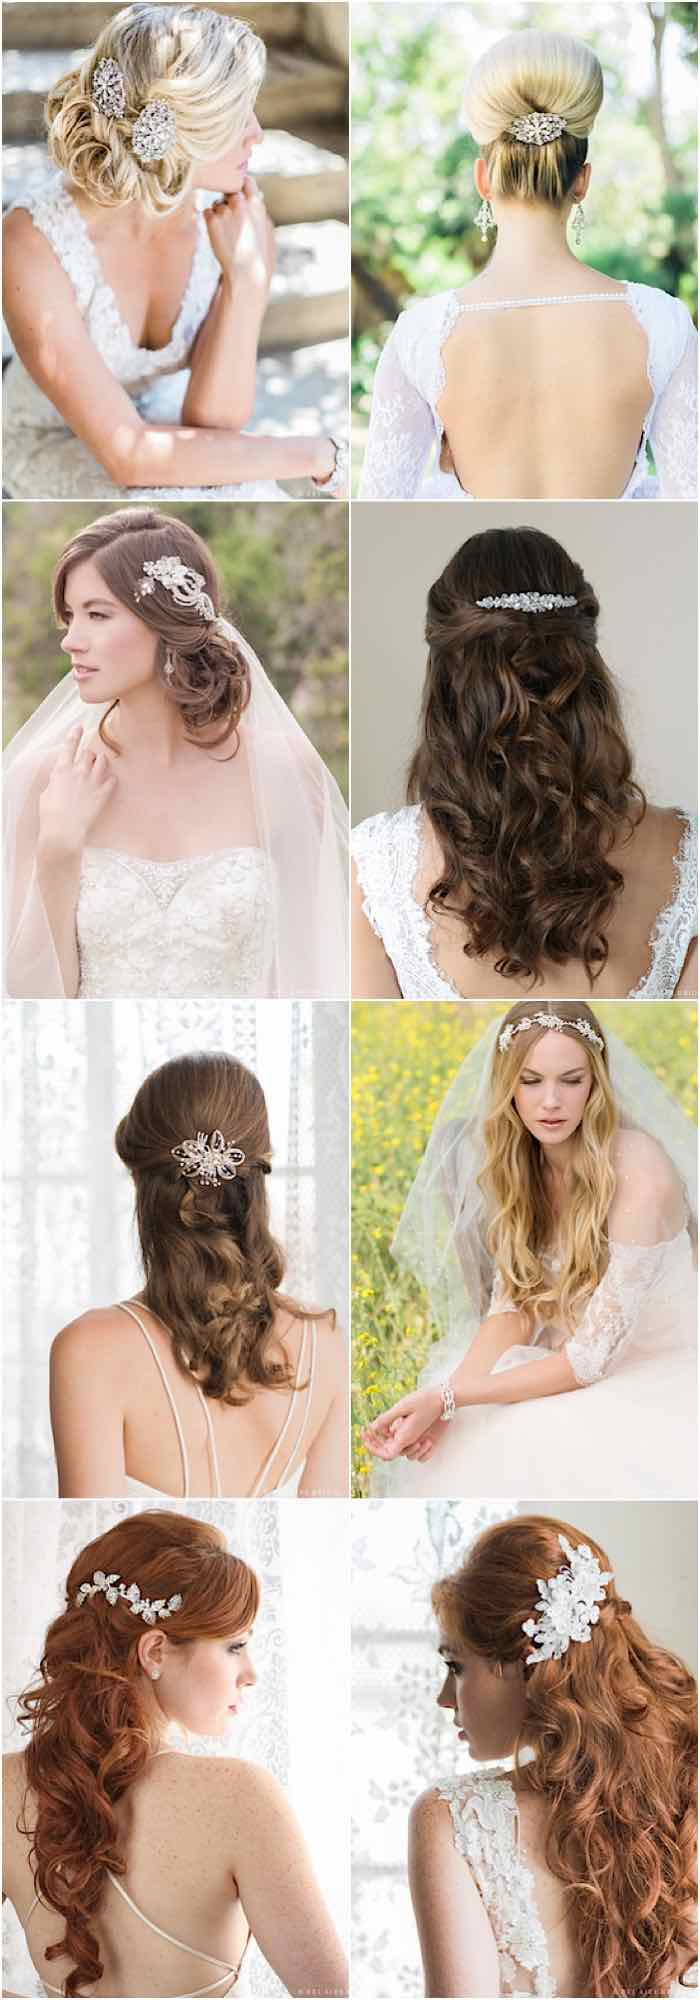 wedding-hairstyles-collage-12302015nz